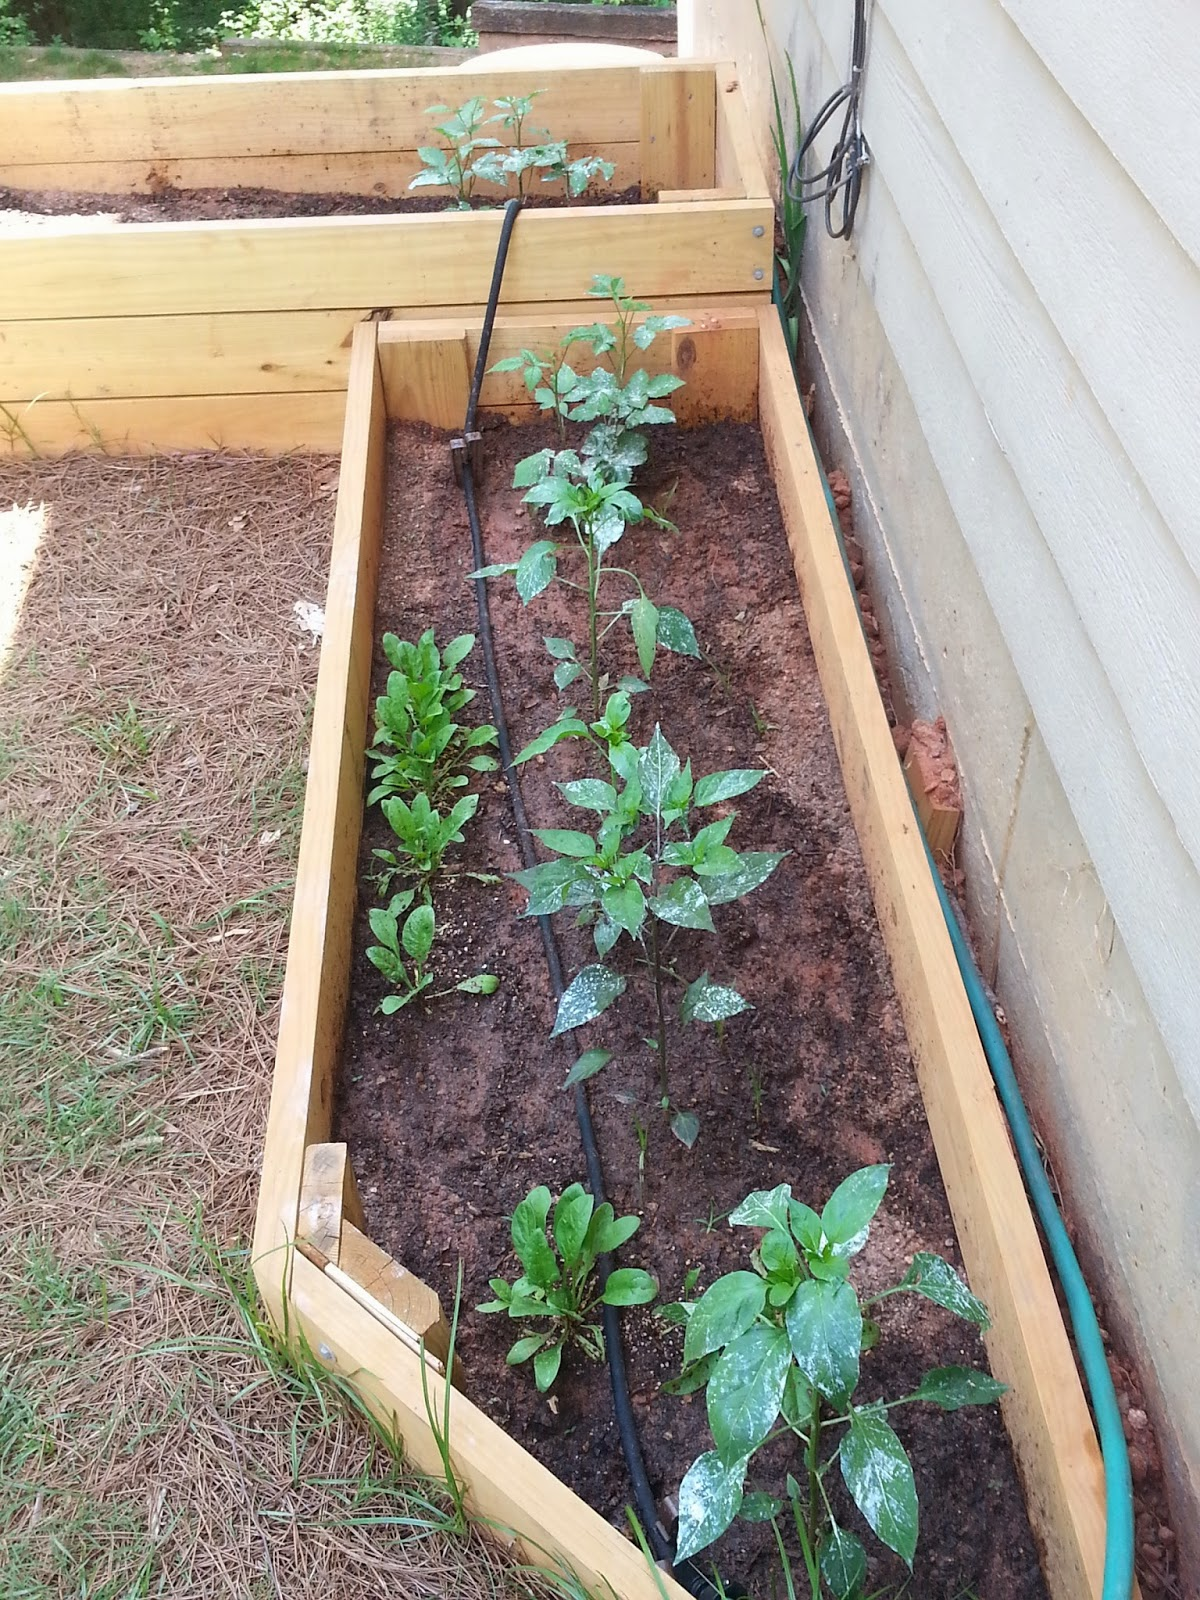 installing drip system irrigation in raised bed gardens